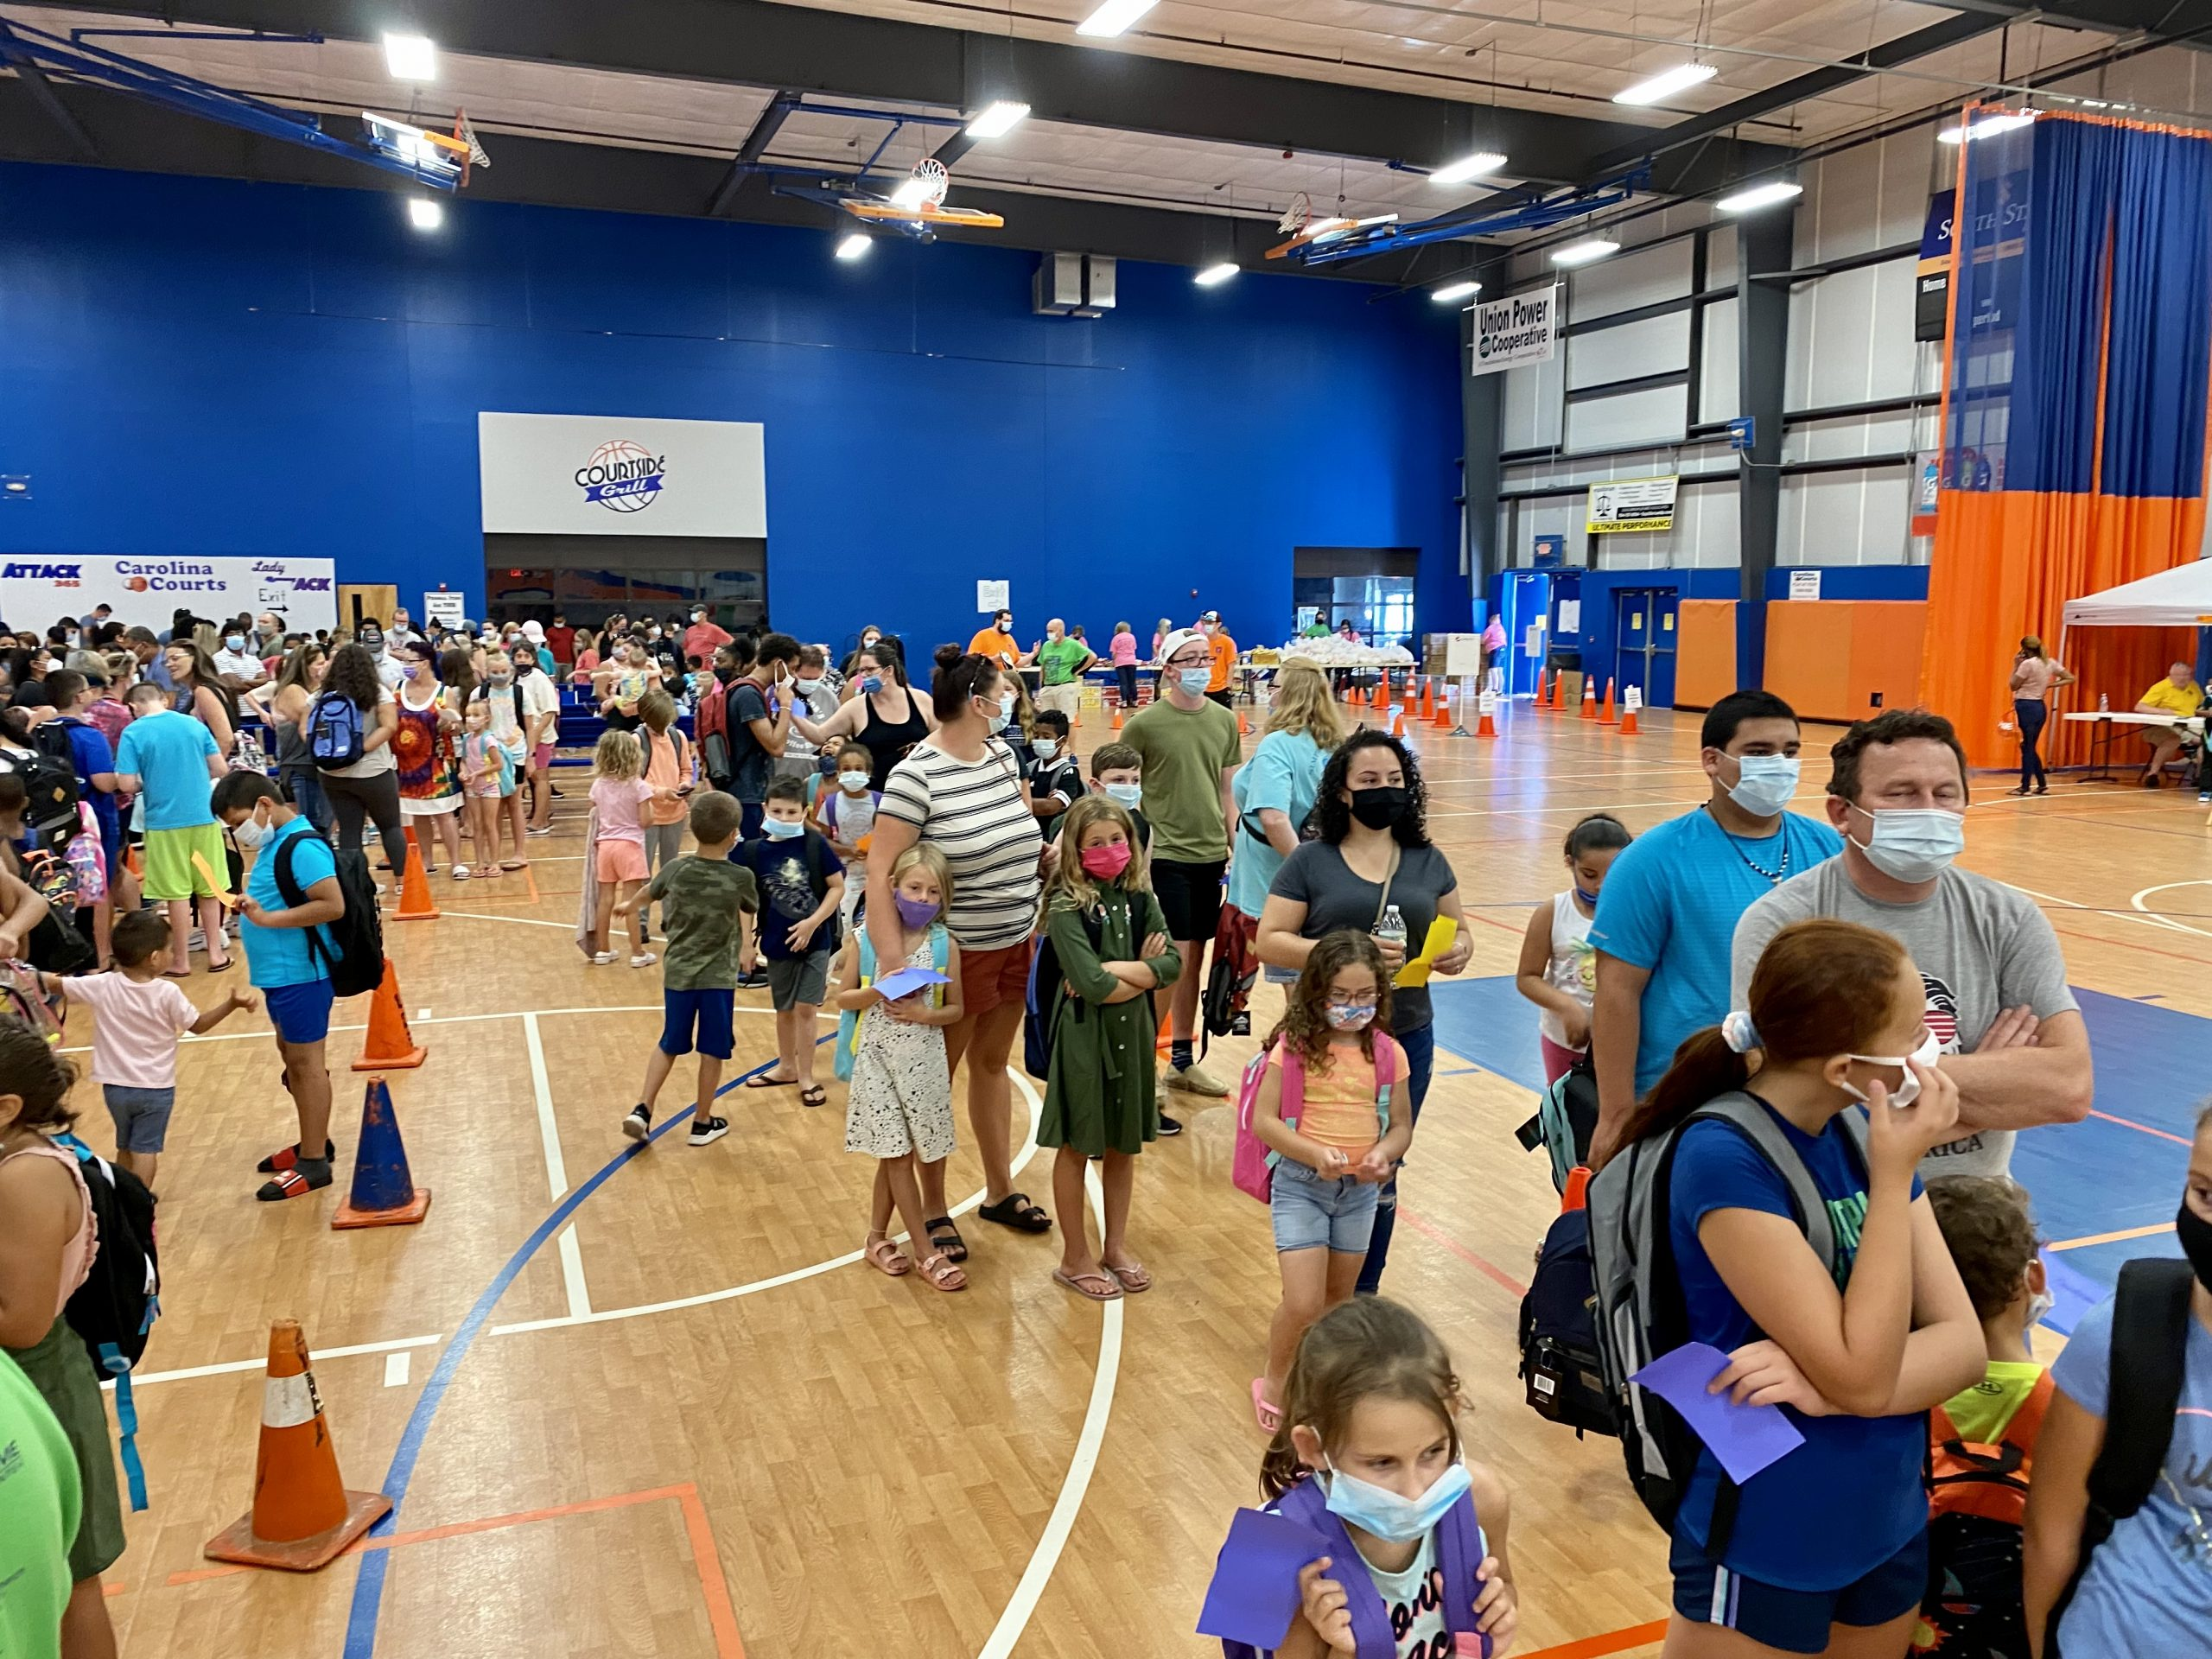 Pastor Ireland predicts that they will be able to provide between 3,500 to 4,000 children backpacks and shoes during 2021's Back 2 School Bash.